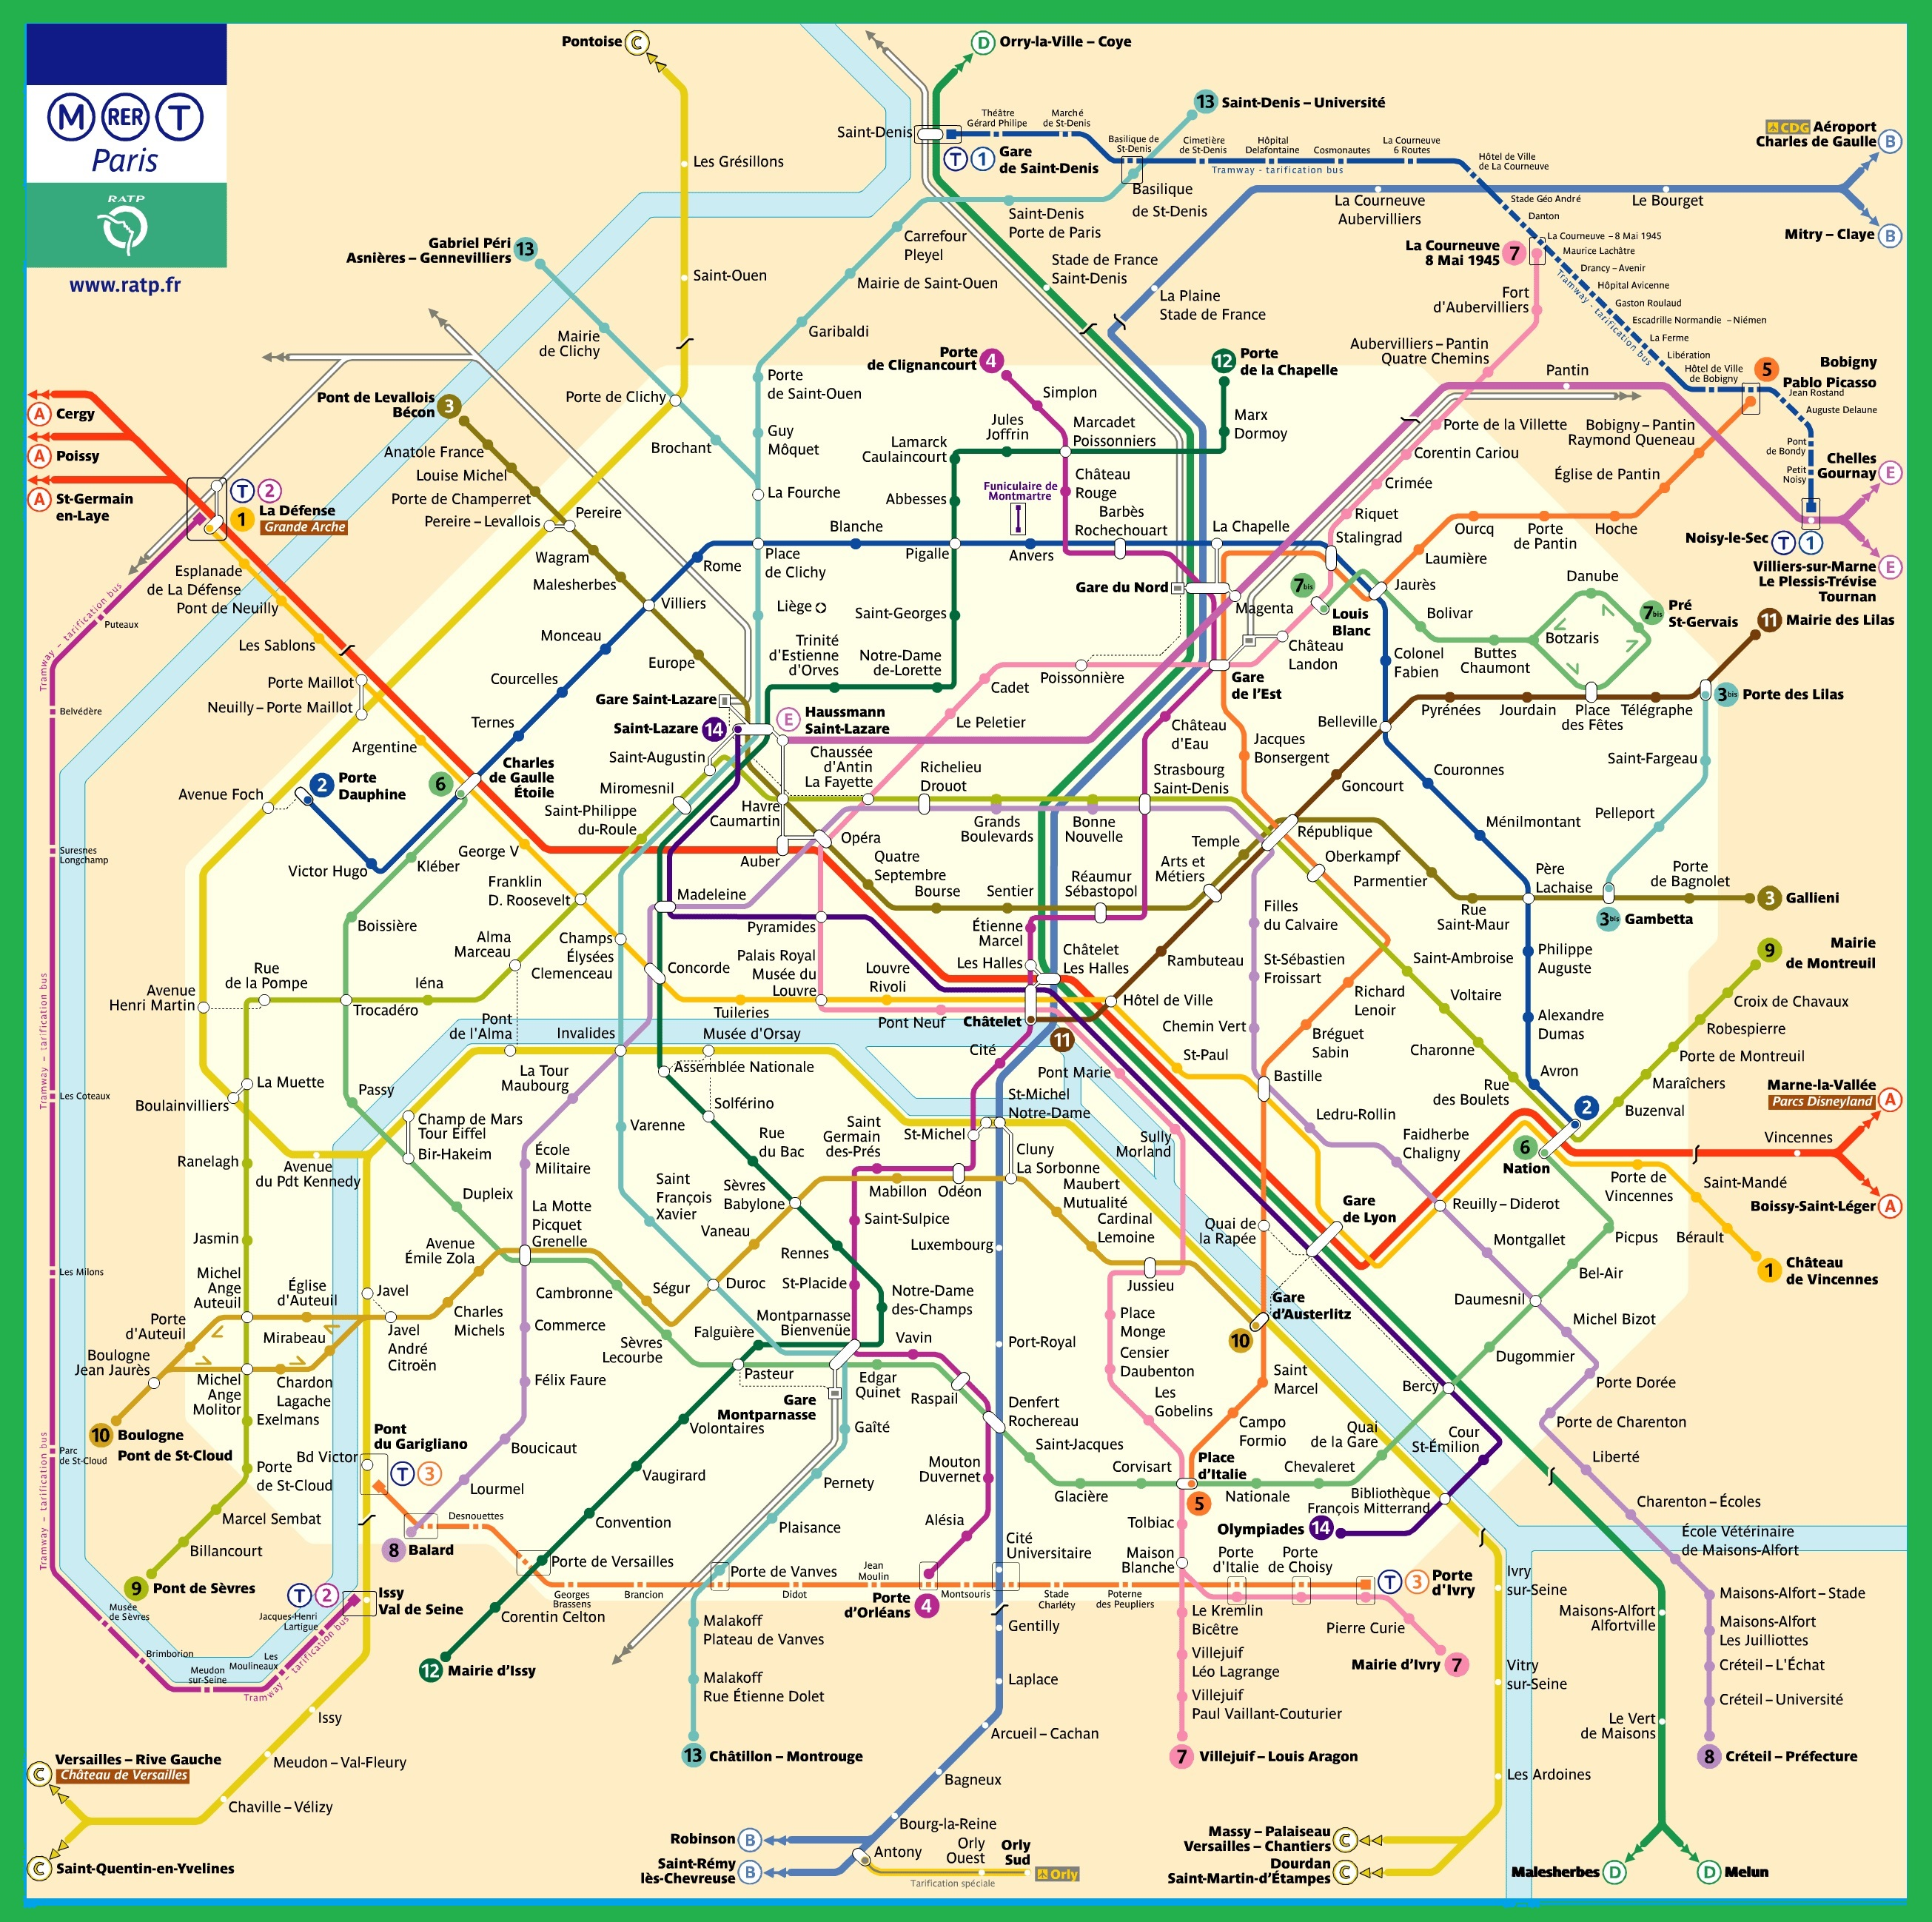 plan du metro de paris 2017 - Photo